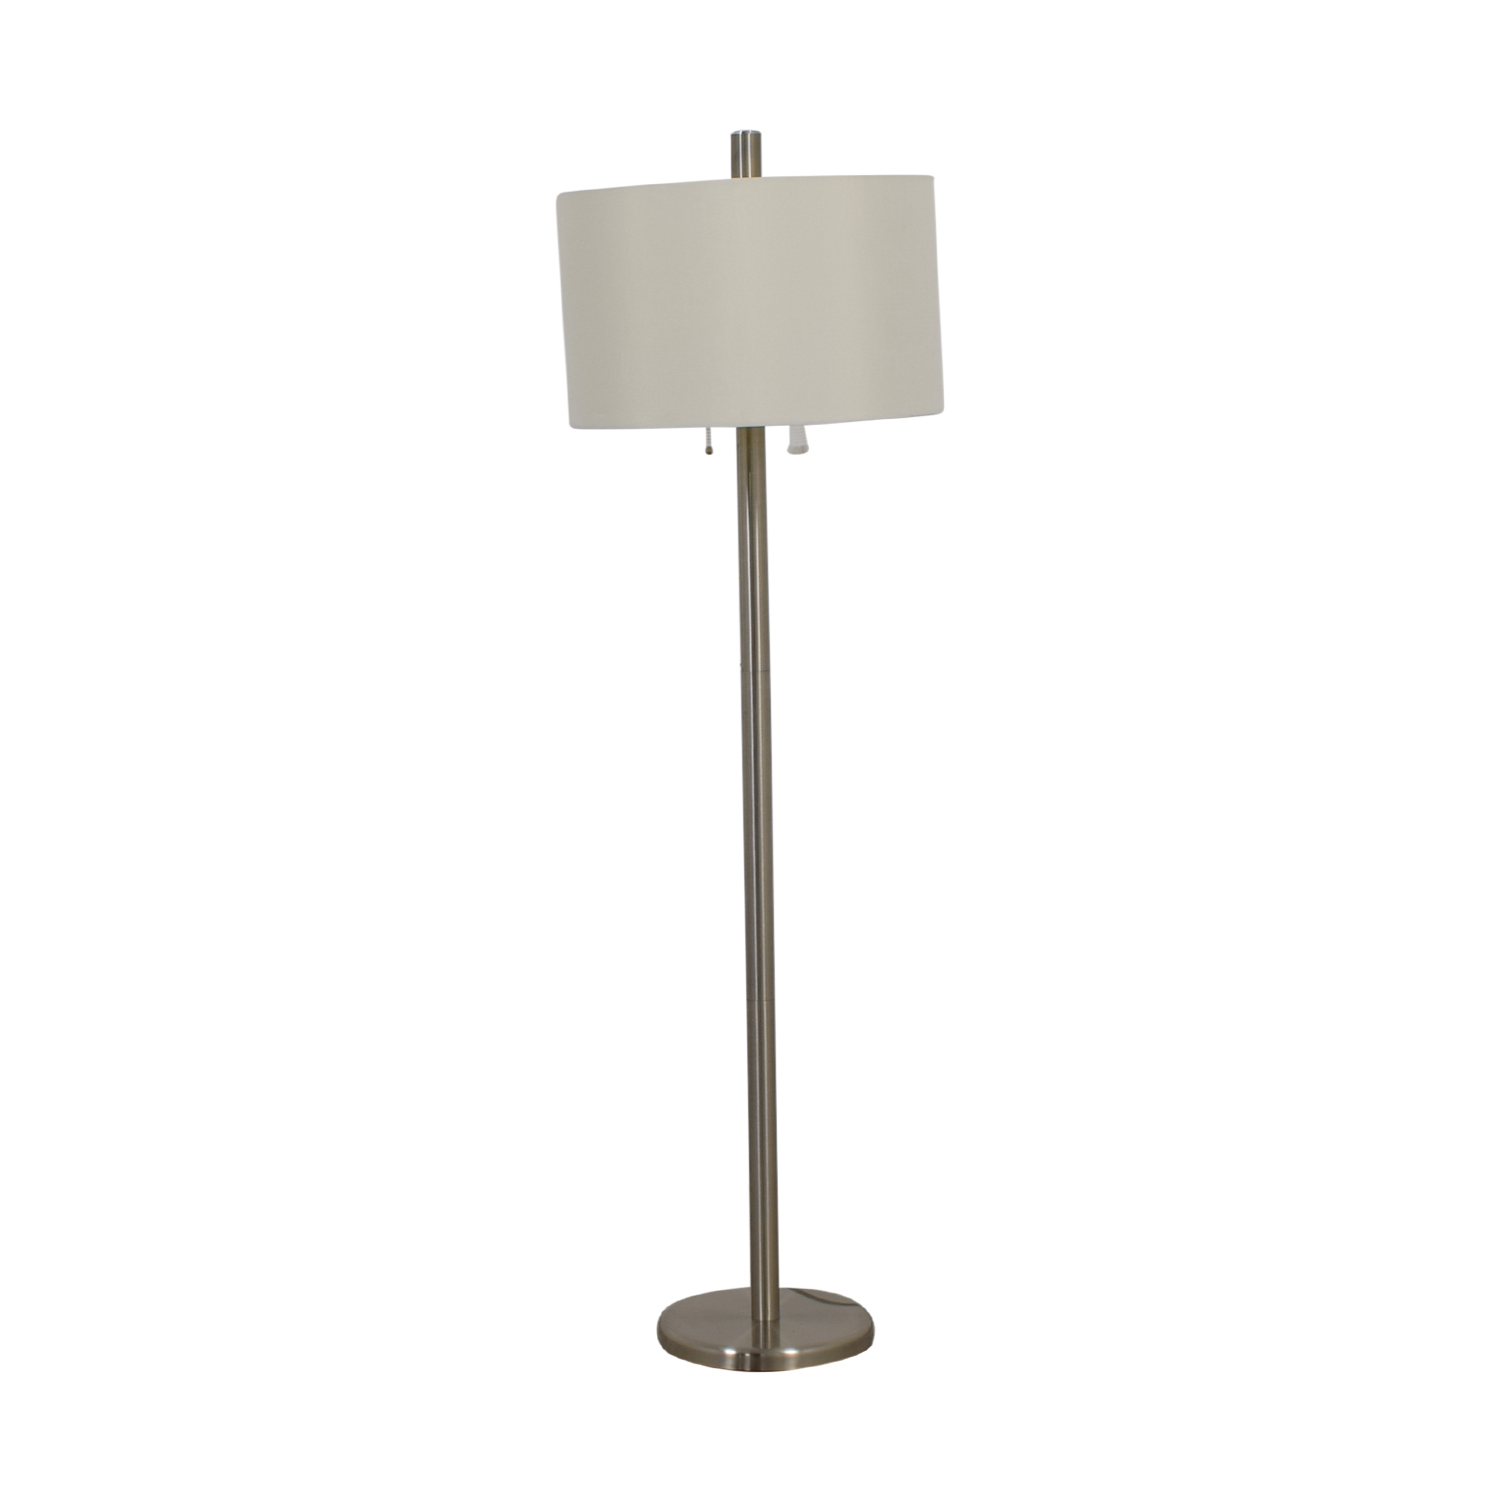 Adesso Adesso Boulevard Satin Steel Floor Lamp price